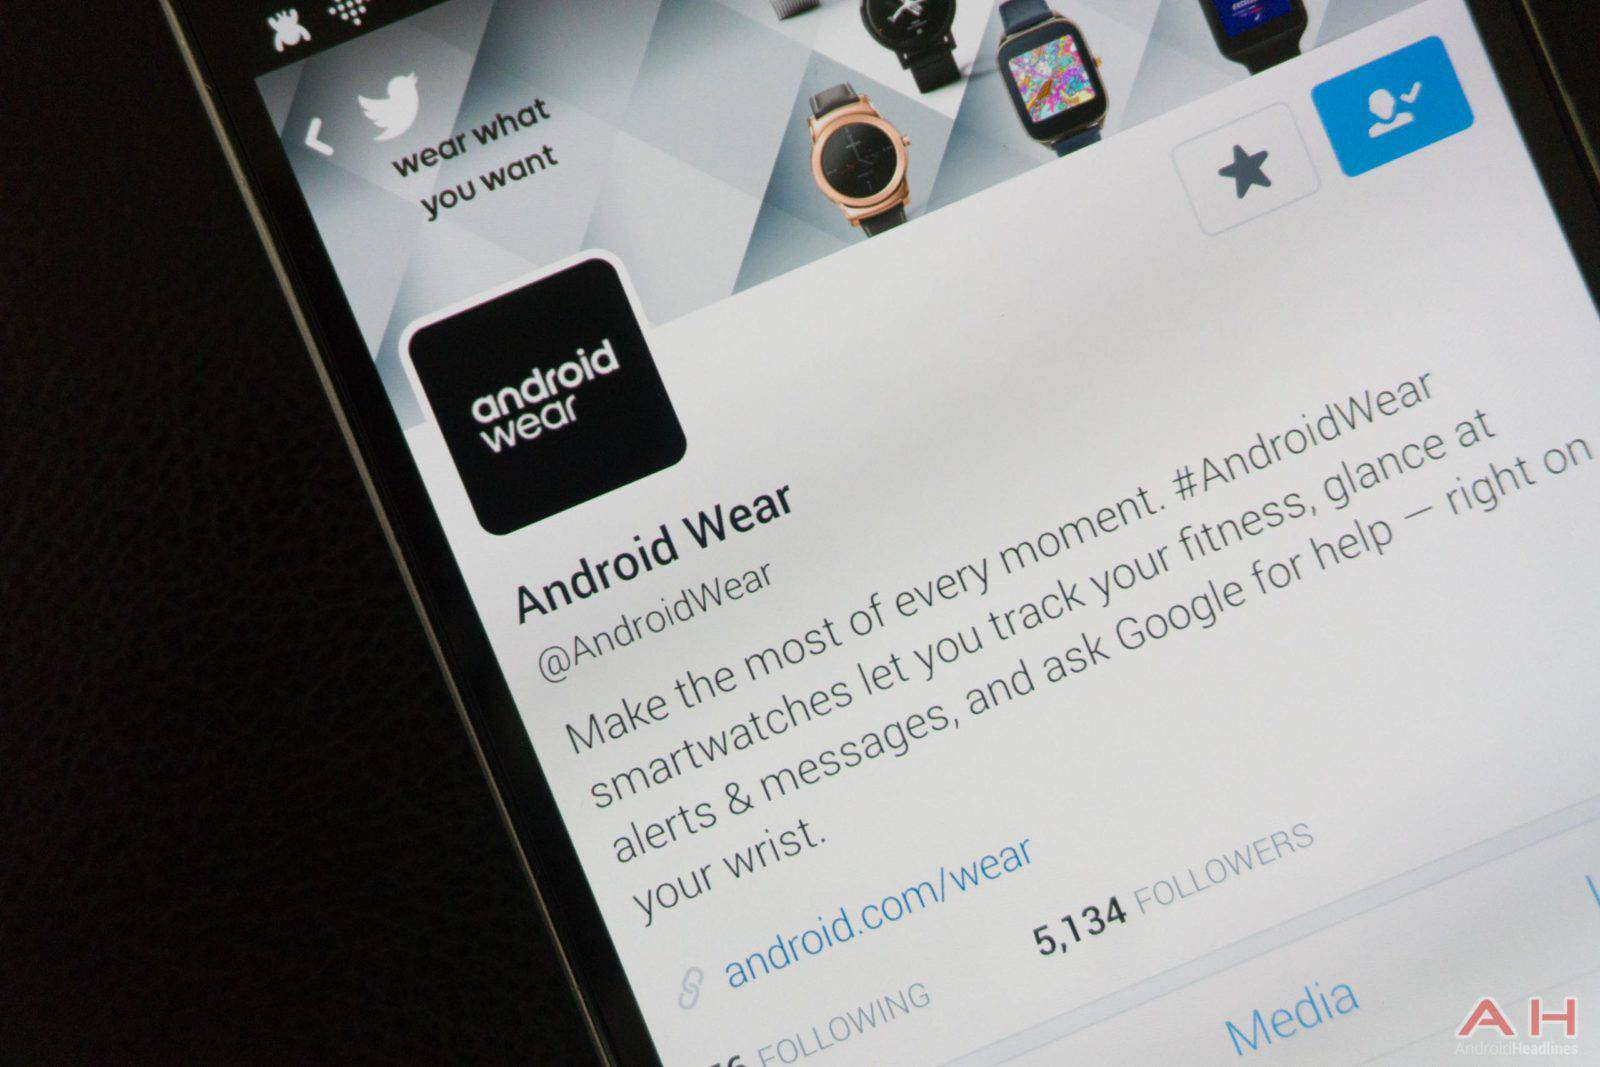 Android-Wear-Twitter-AH-00077